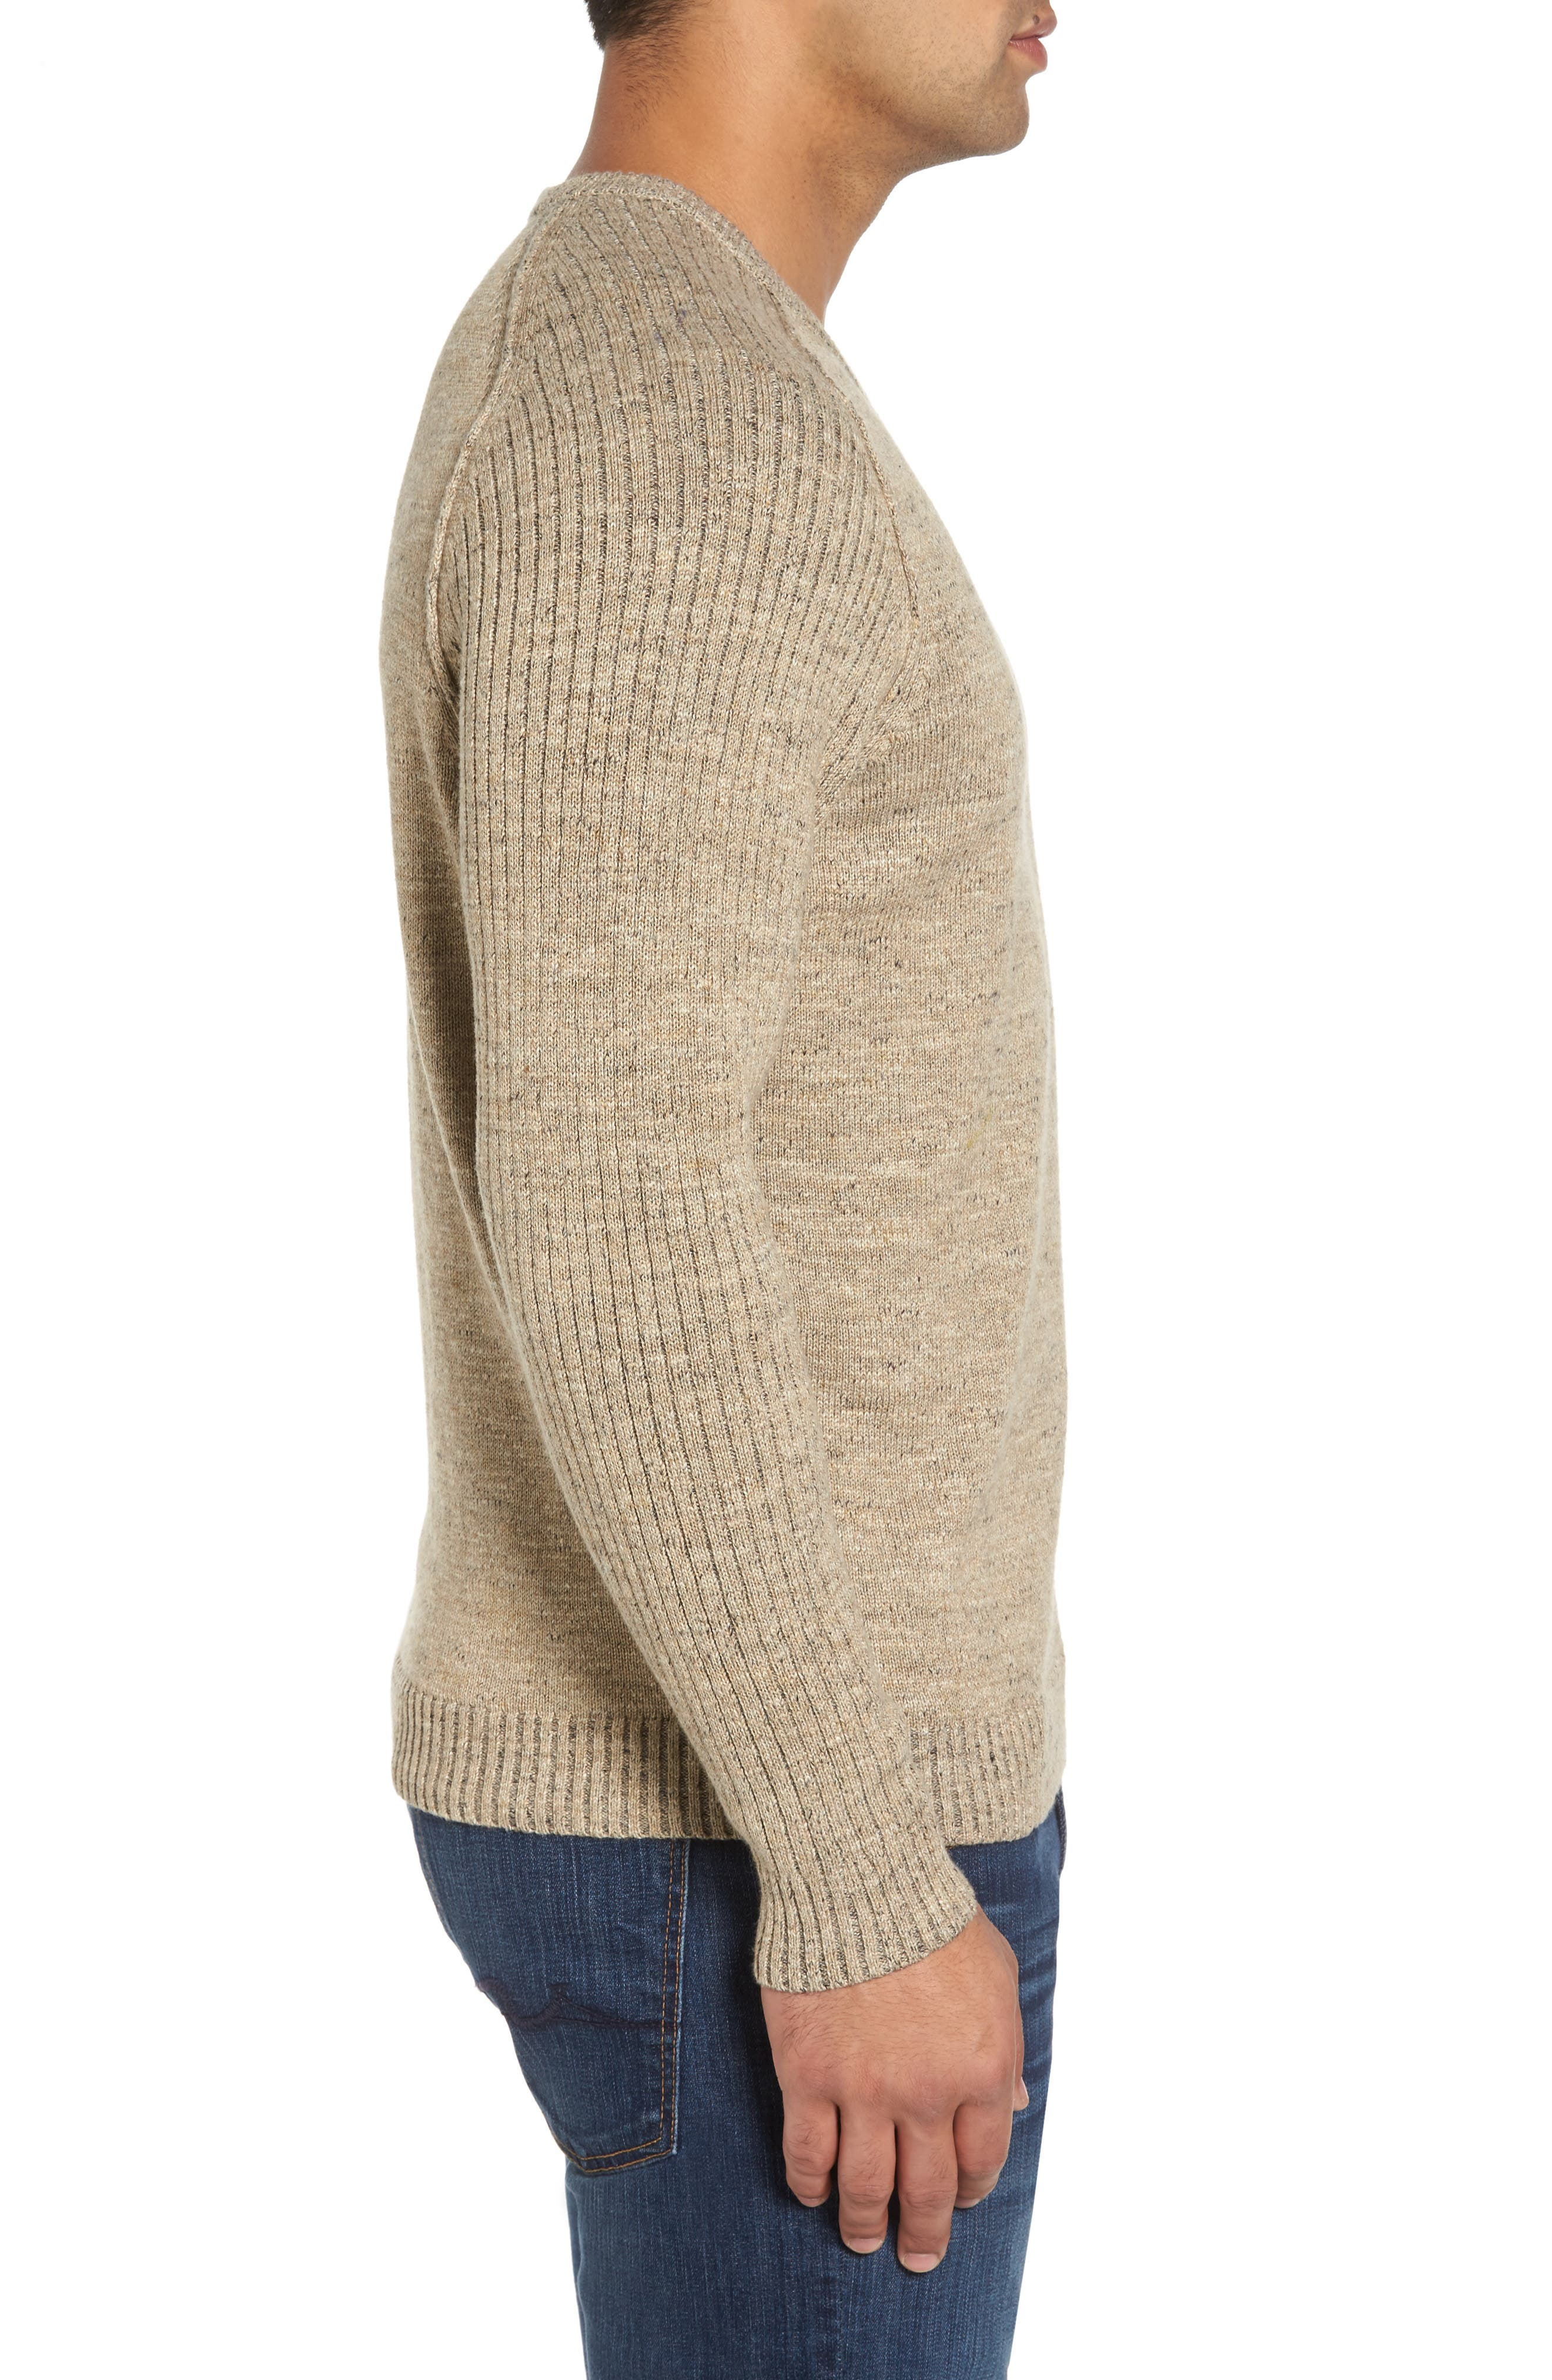 Gran Rey Flip Reversible Cotton & Wool Sweater,                             Alternate thumbnail 6, color,